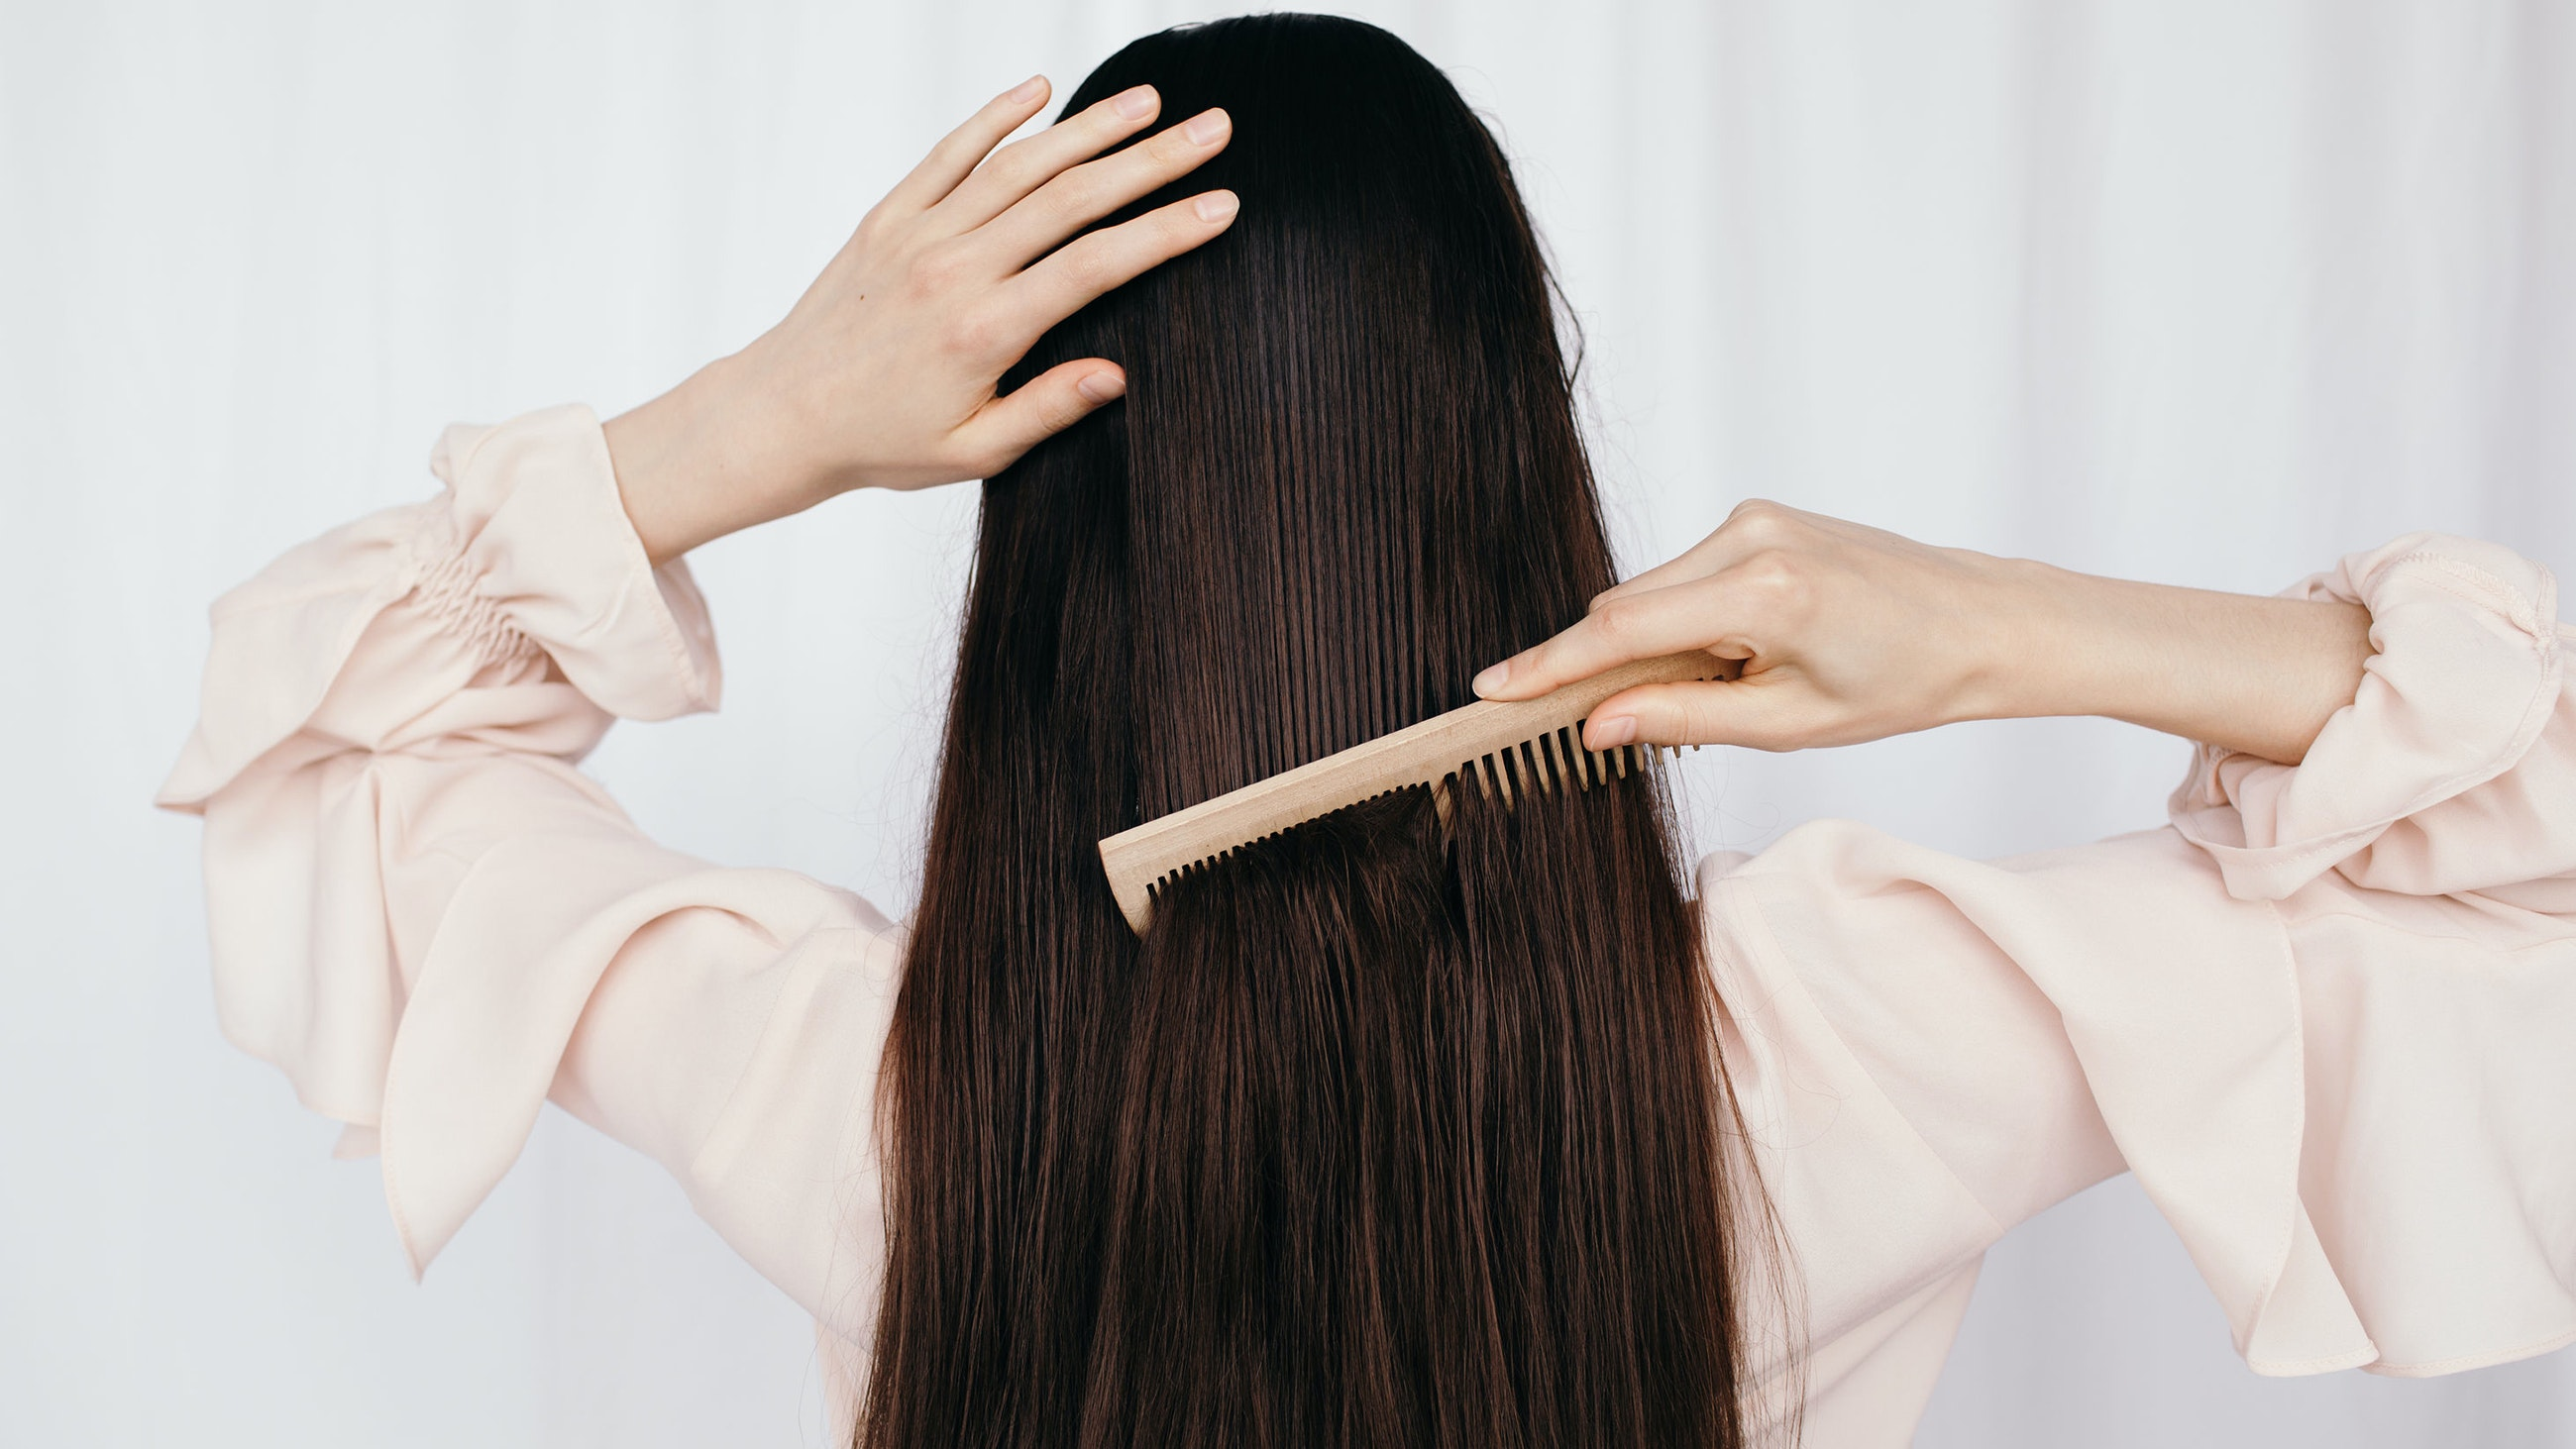 Woman brushing long brown hair